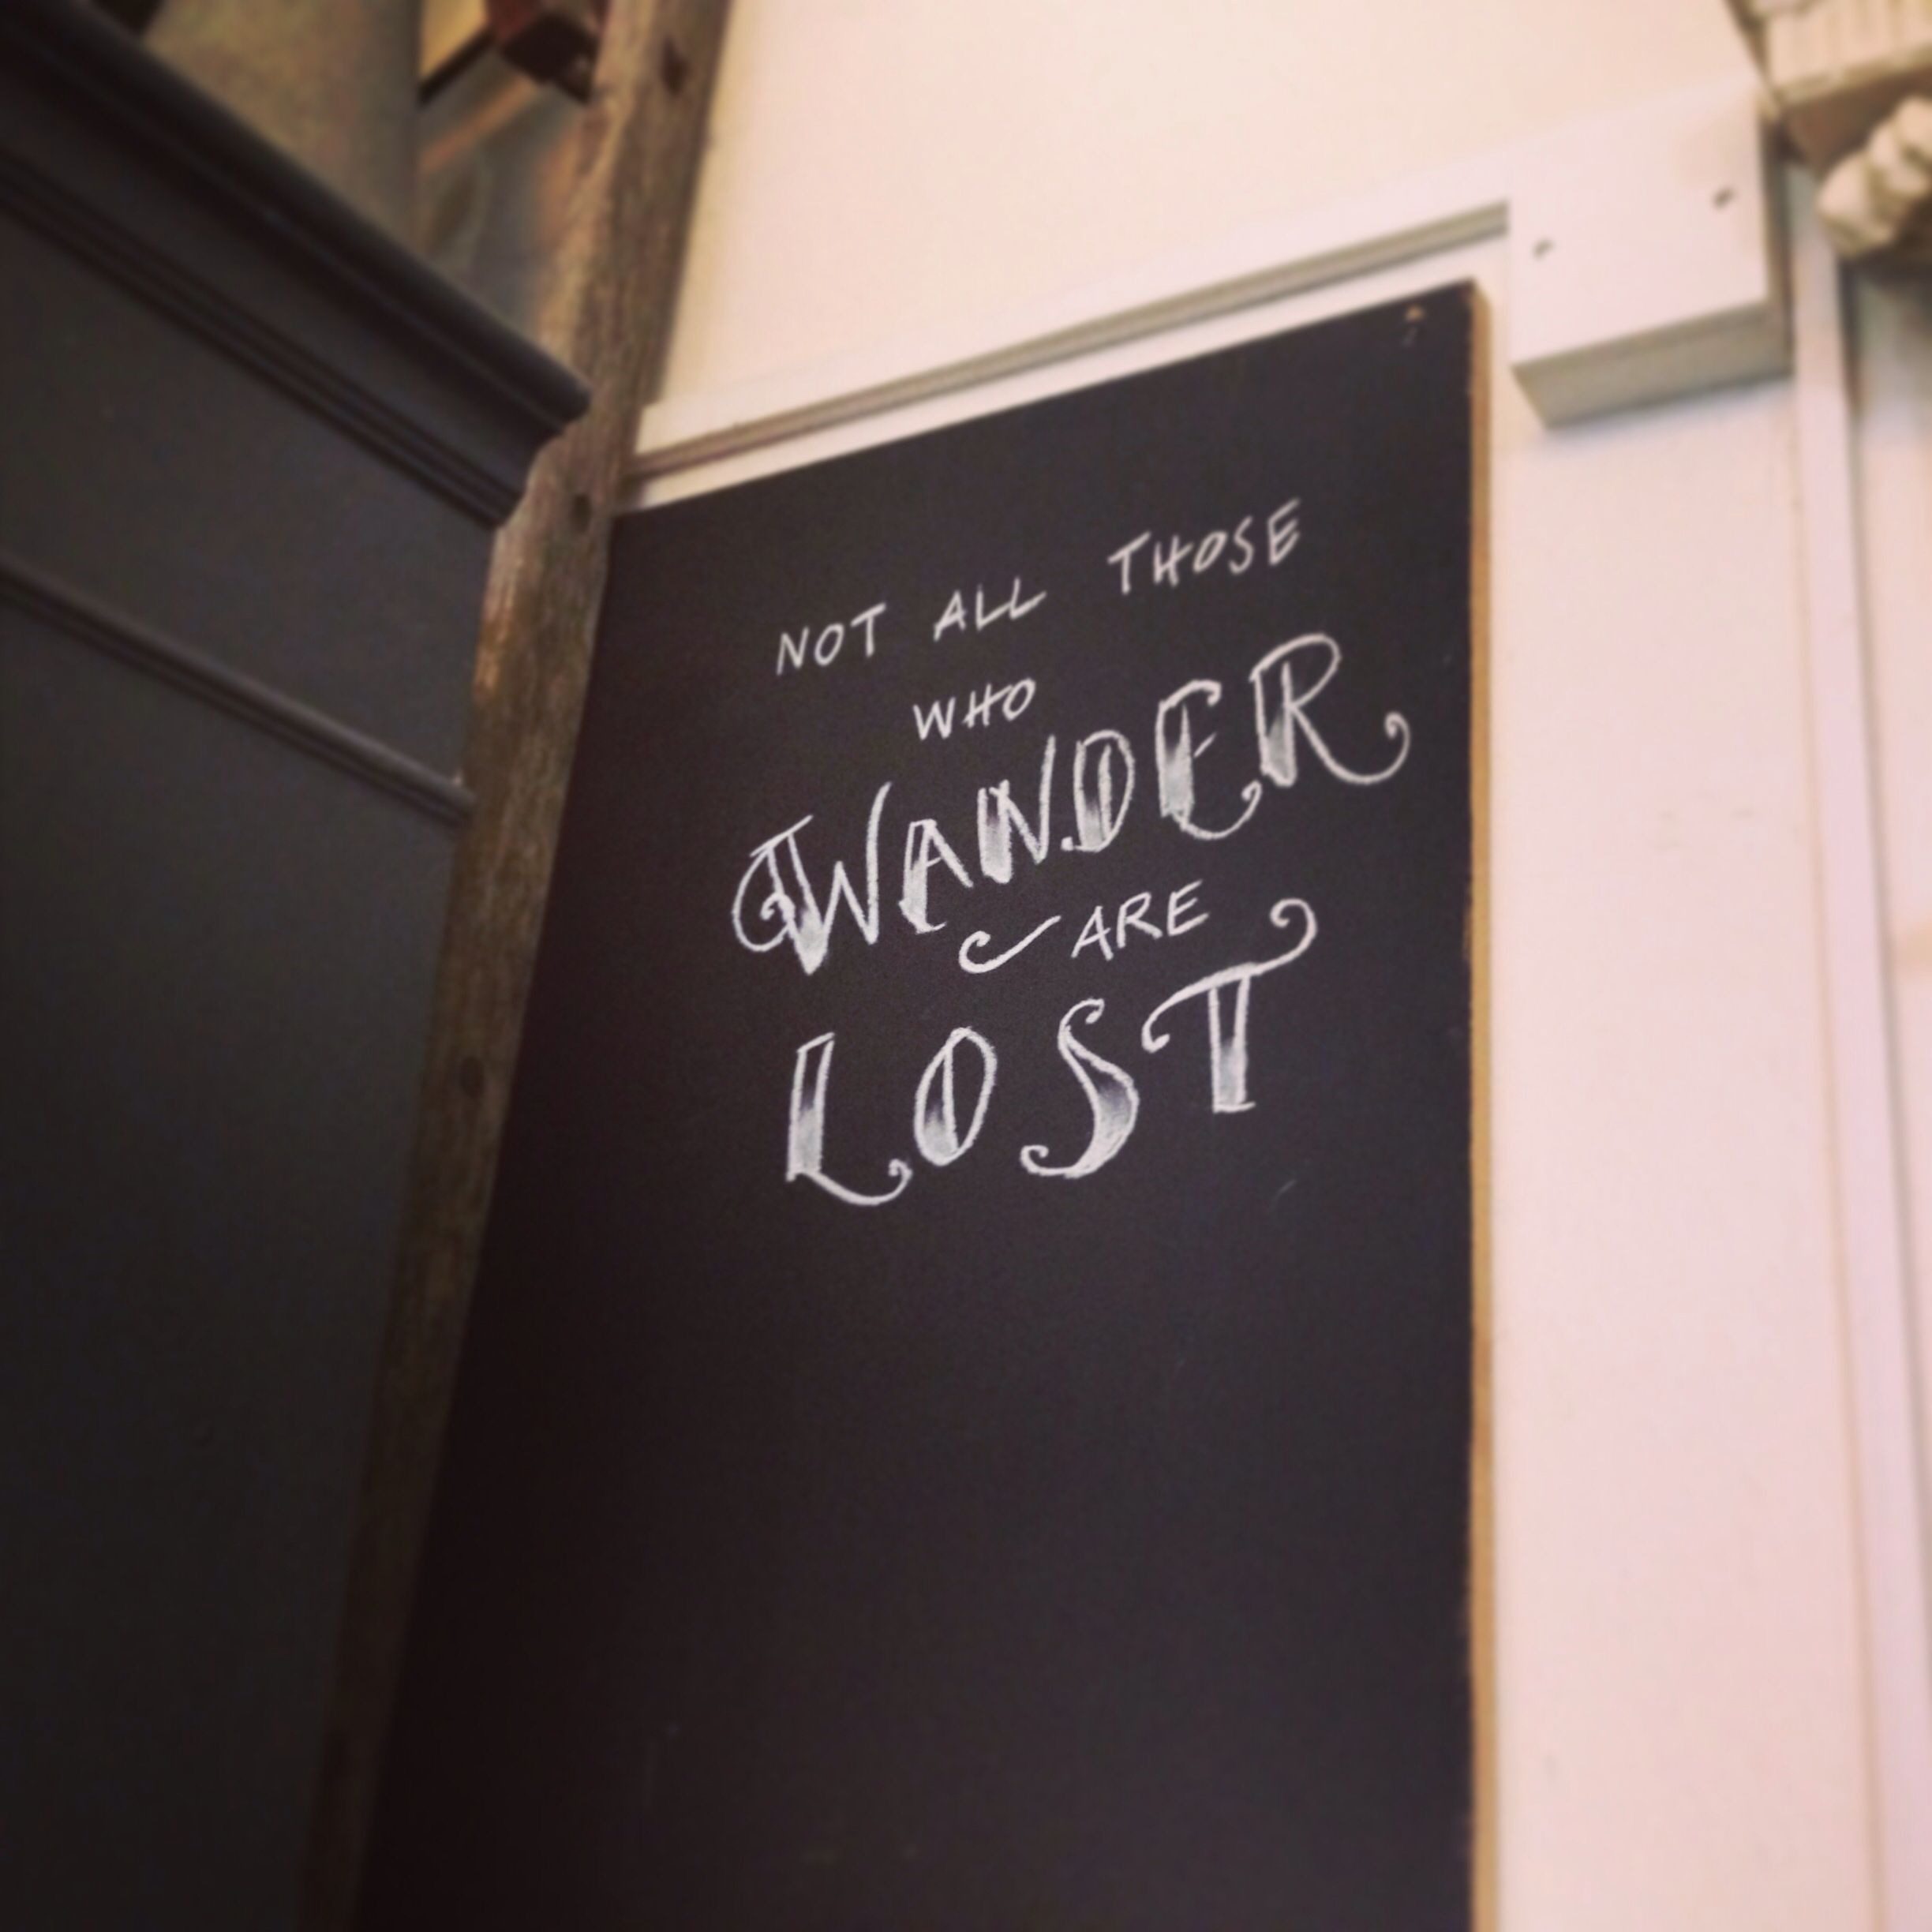 Not all those who wander are lost. Found this above a pub